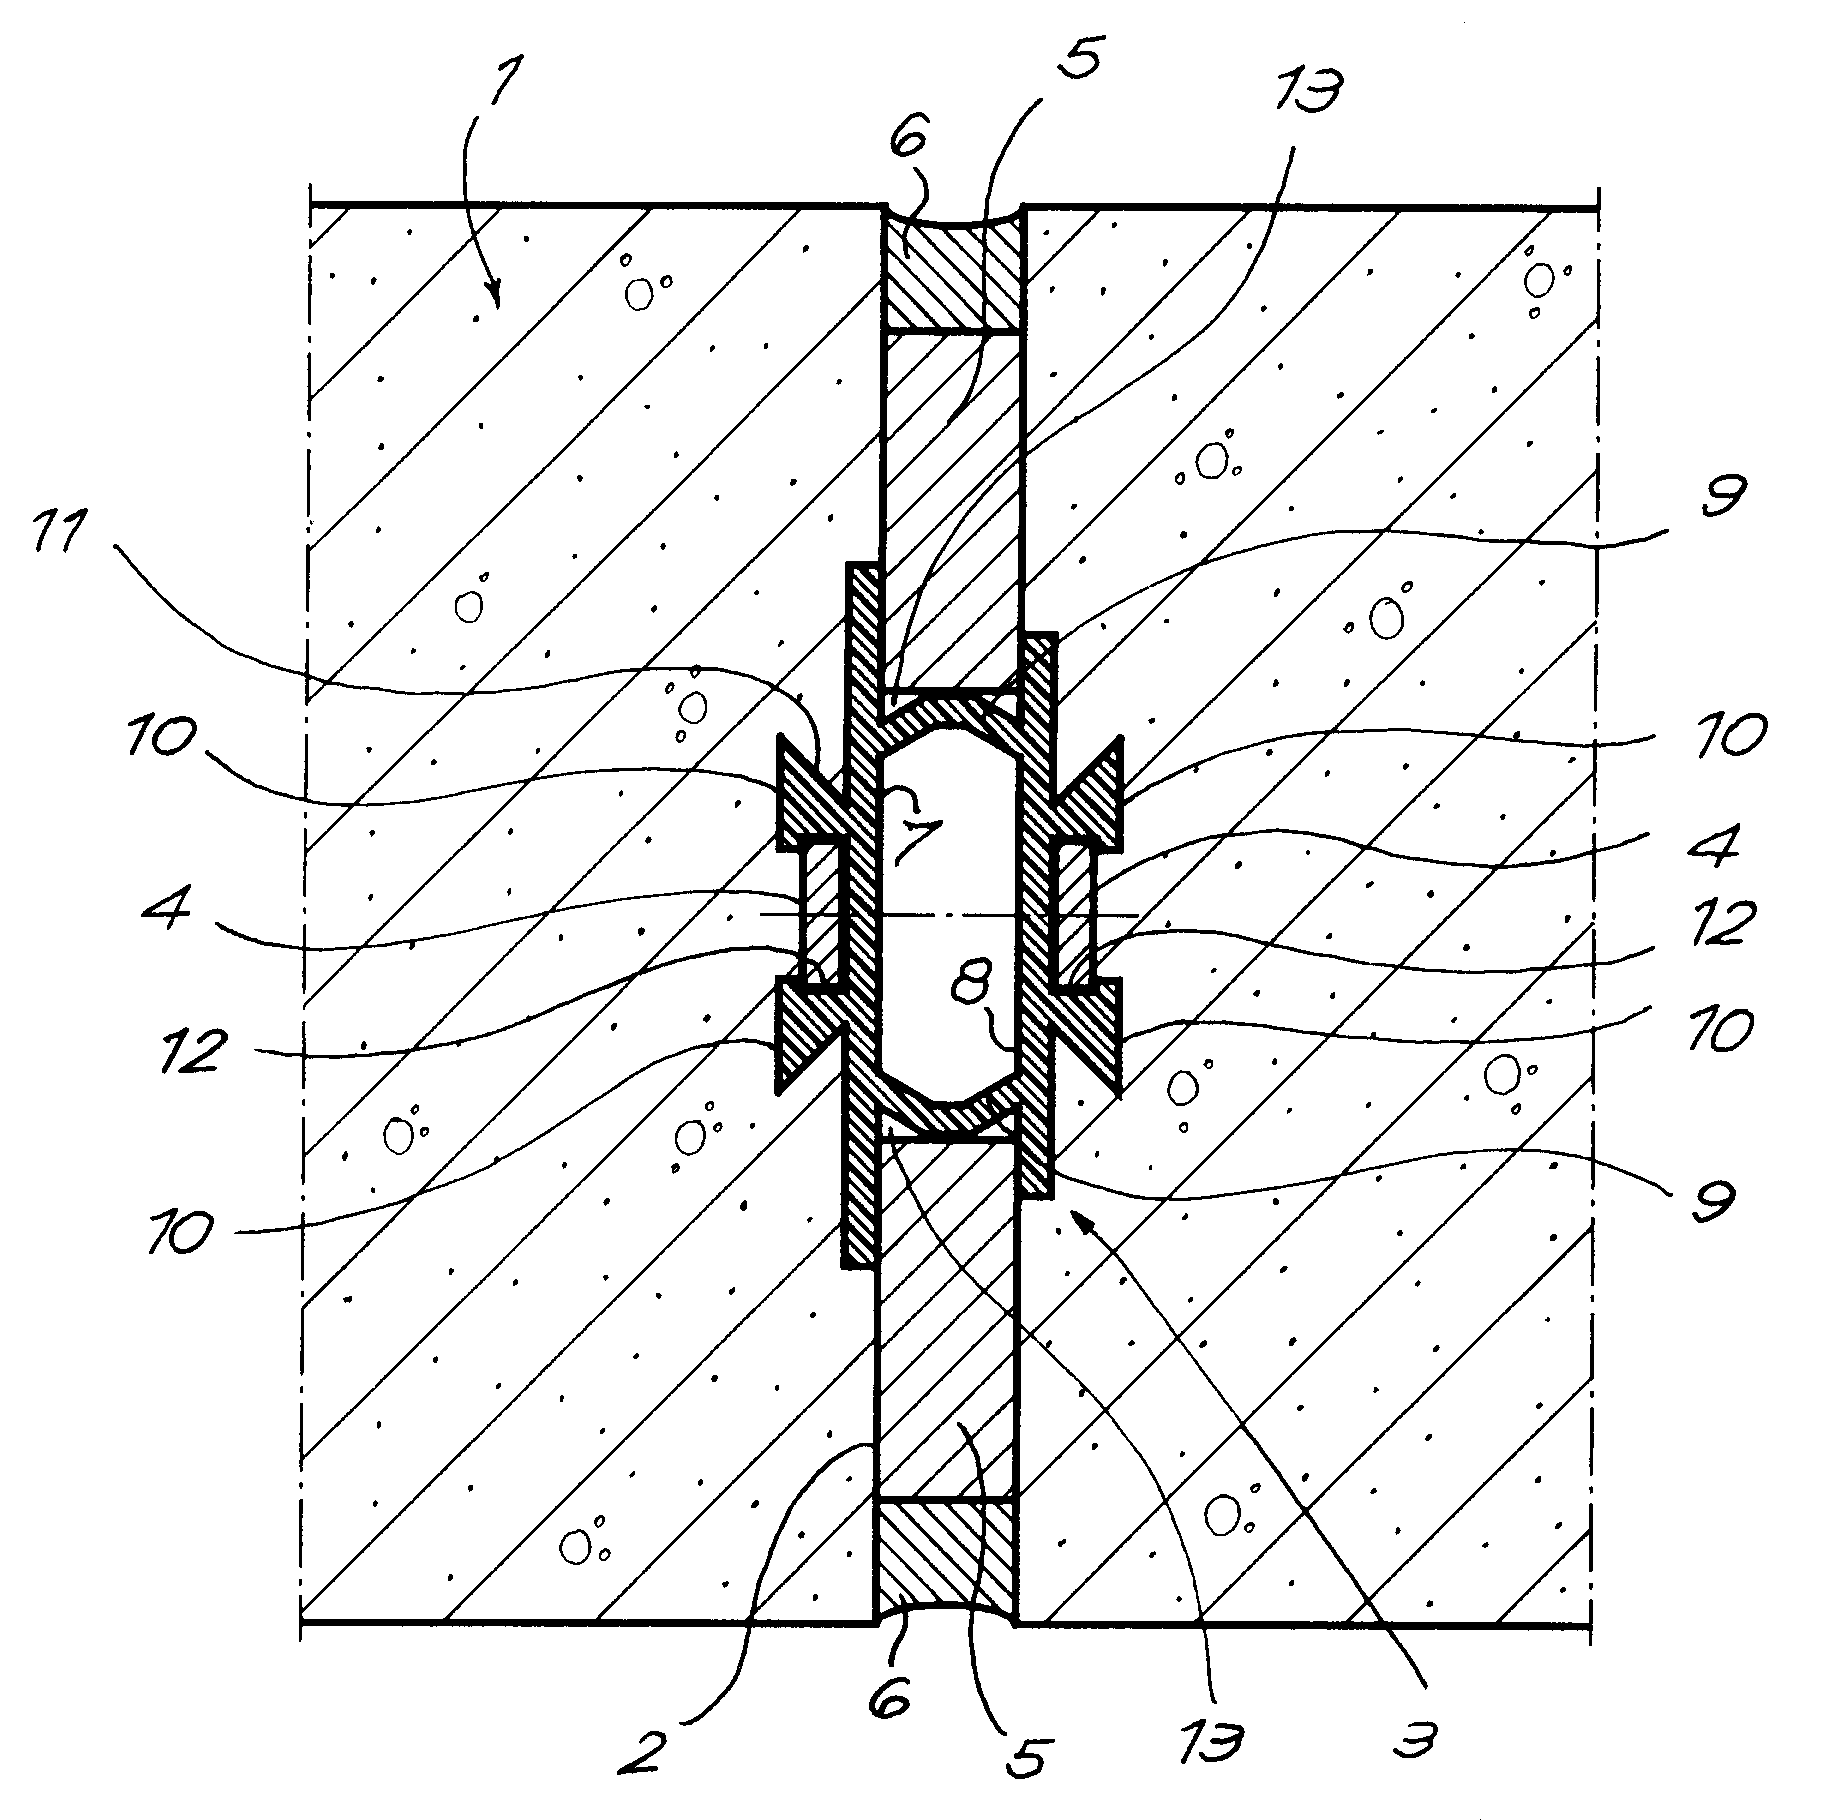 expansion joint concrete wall. patent drawing expansion joint concrete wall